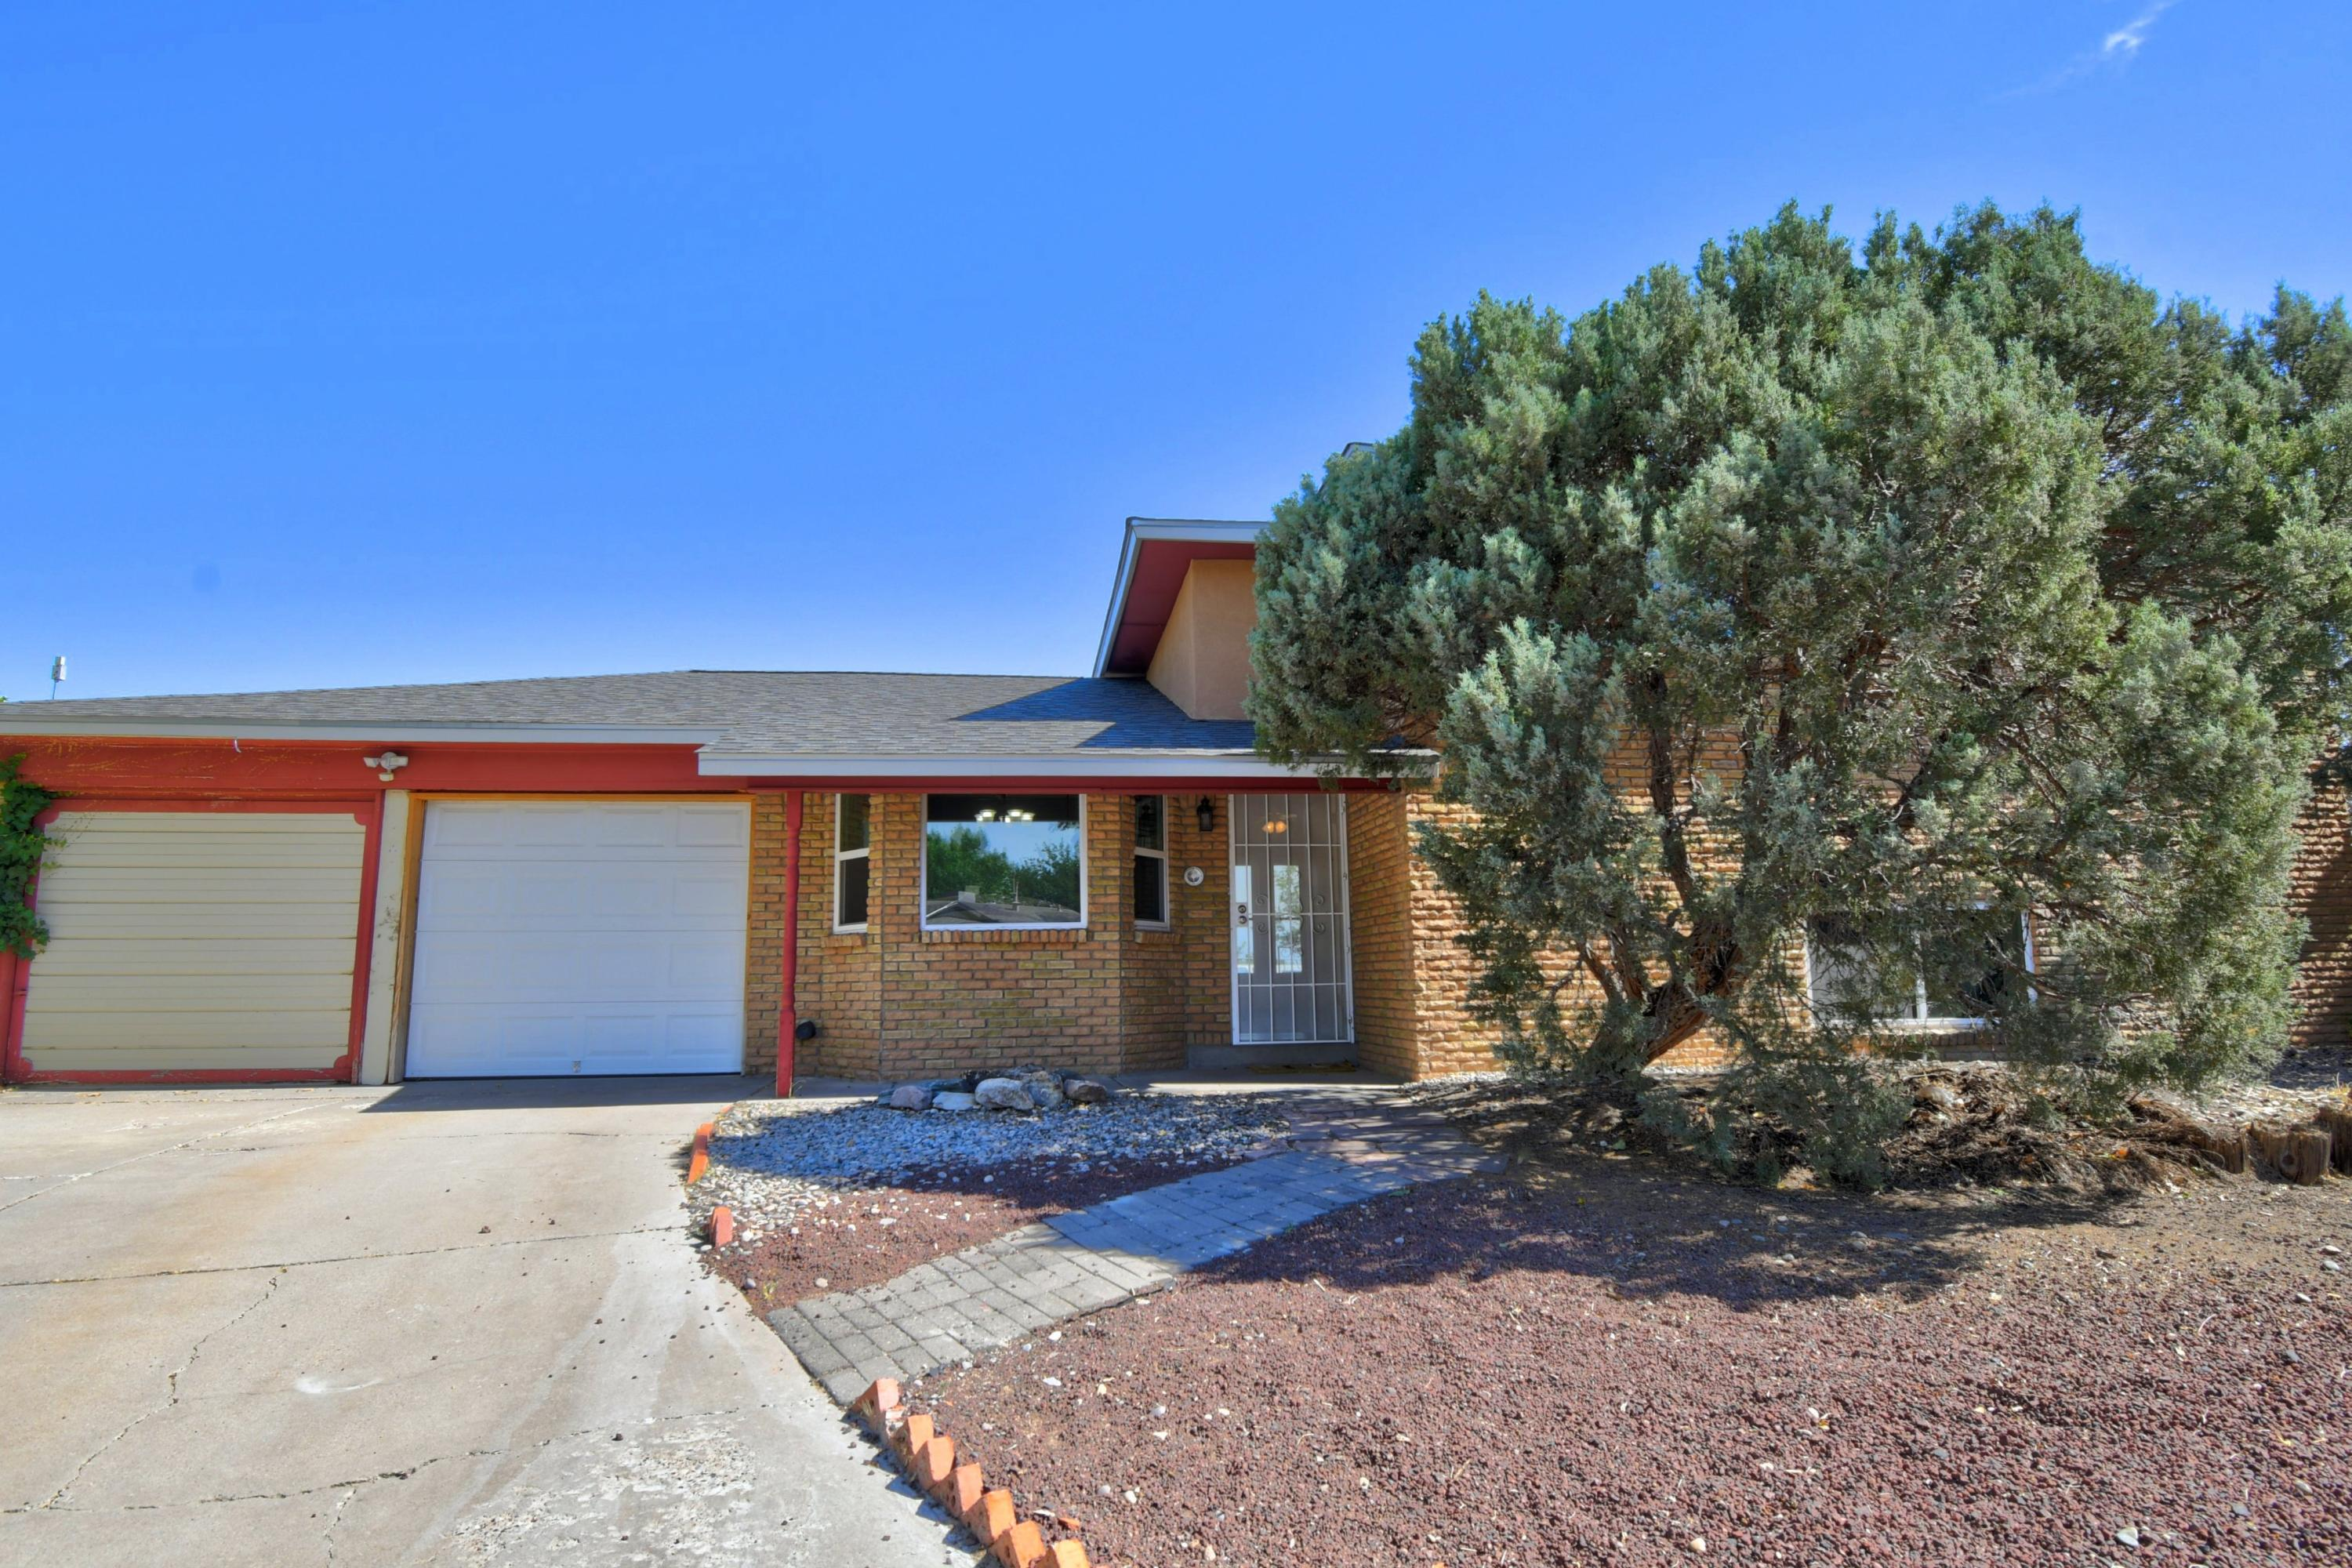 This is the One! Far North East Hieghts 4 bed 2 bath in the popular New Holiday Park subdivision.  2100 square feet with a big back yard. Does have Back yard access but not RV parking. New flooring through out(June 2020), new stove, dish washer and microwave (June 2020) REFRIGERATED AIR (Oct.2018), windows (Oct.2018), and replaced roof (May  2018). Great school district, close to shopping and overall a wonderful nieghborhood. Make that offer now because this one will not last.....